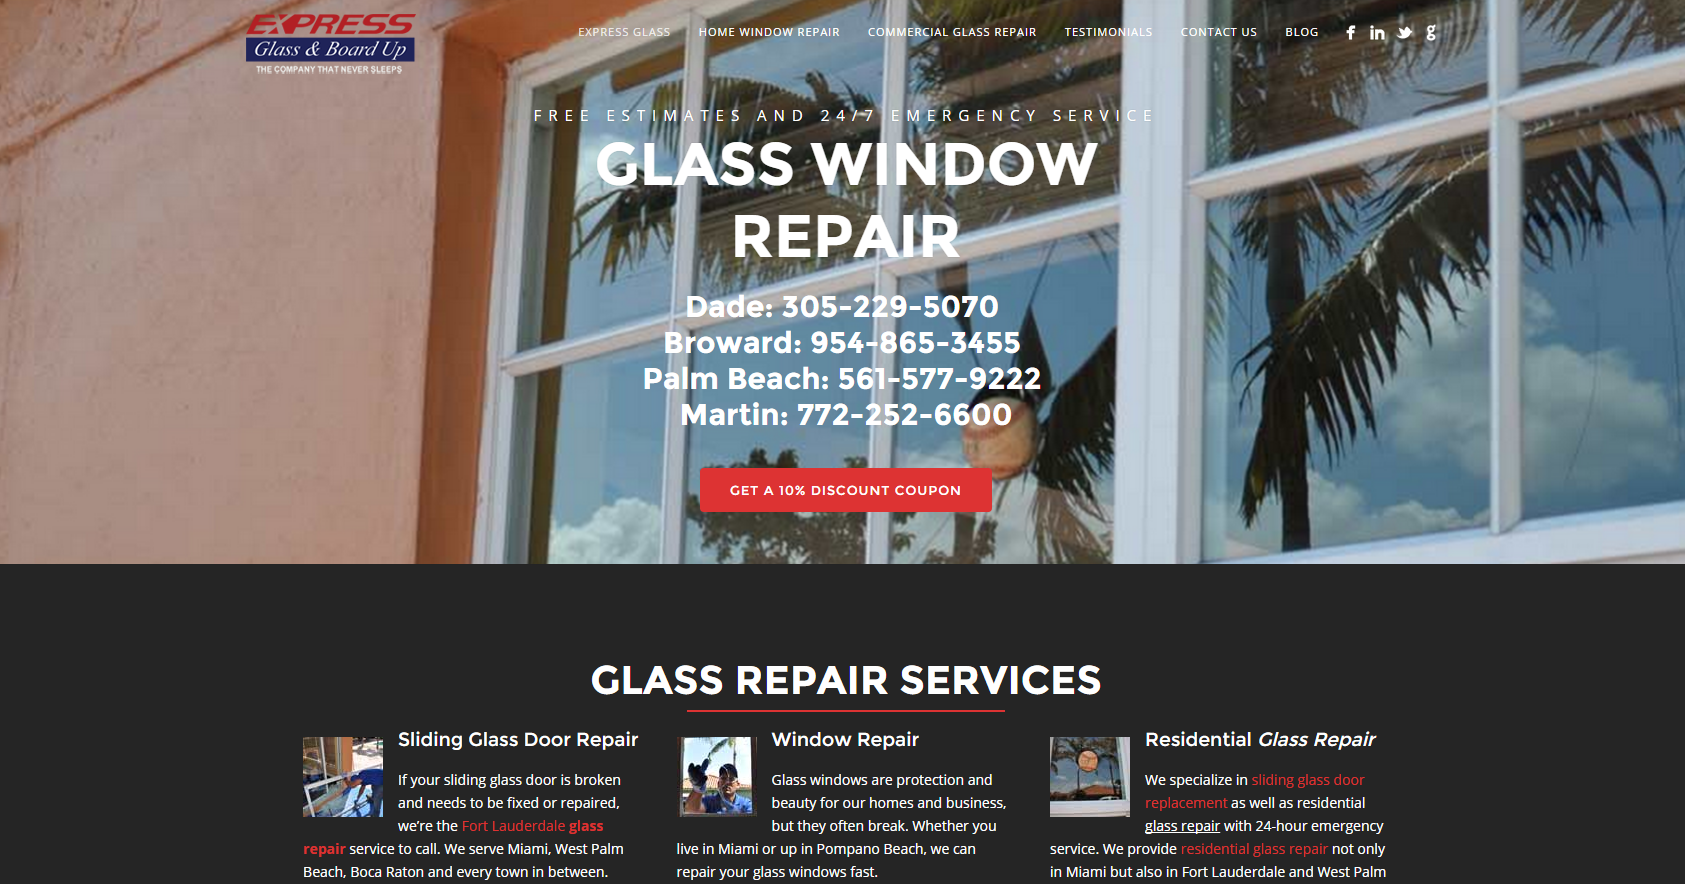 Express Glass Top Residential Glass Repair Service For West Palm